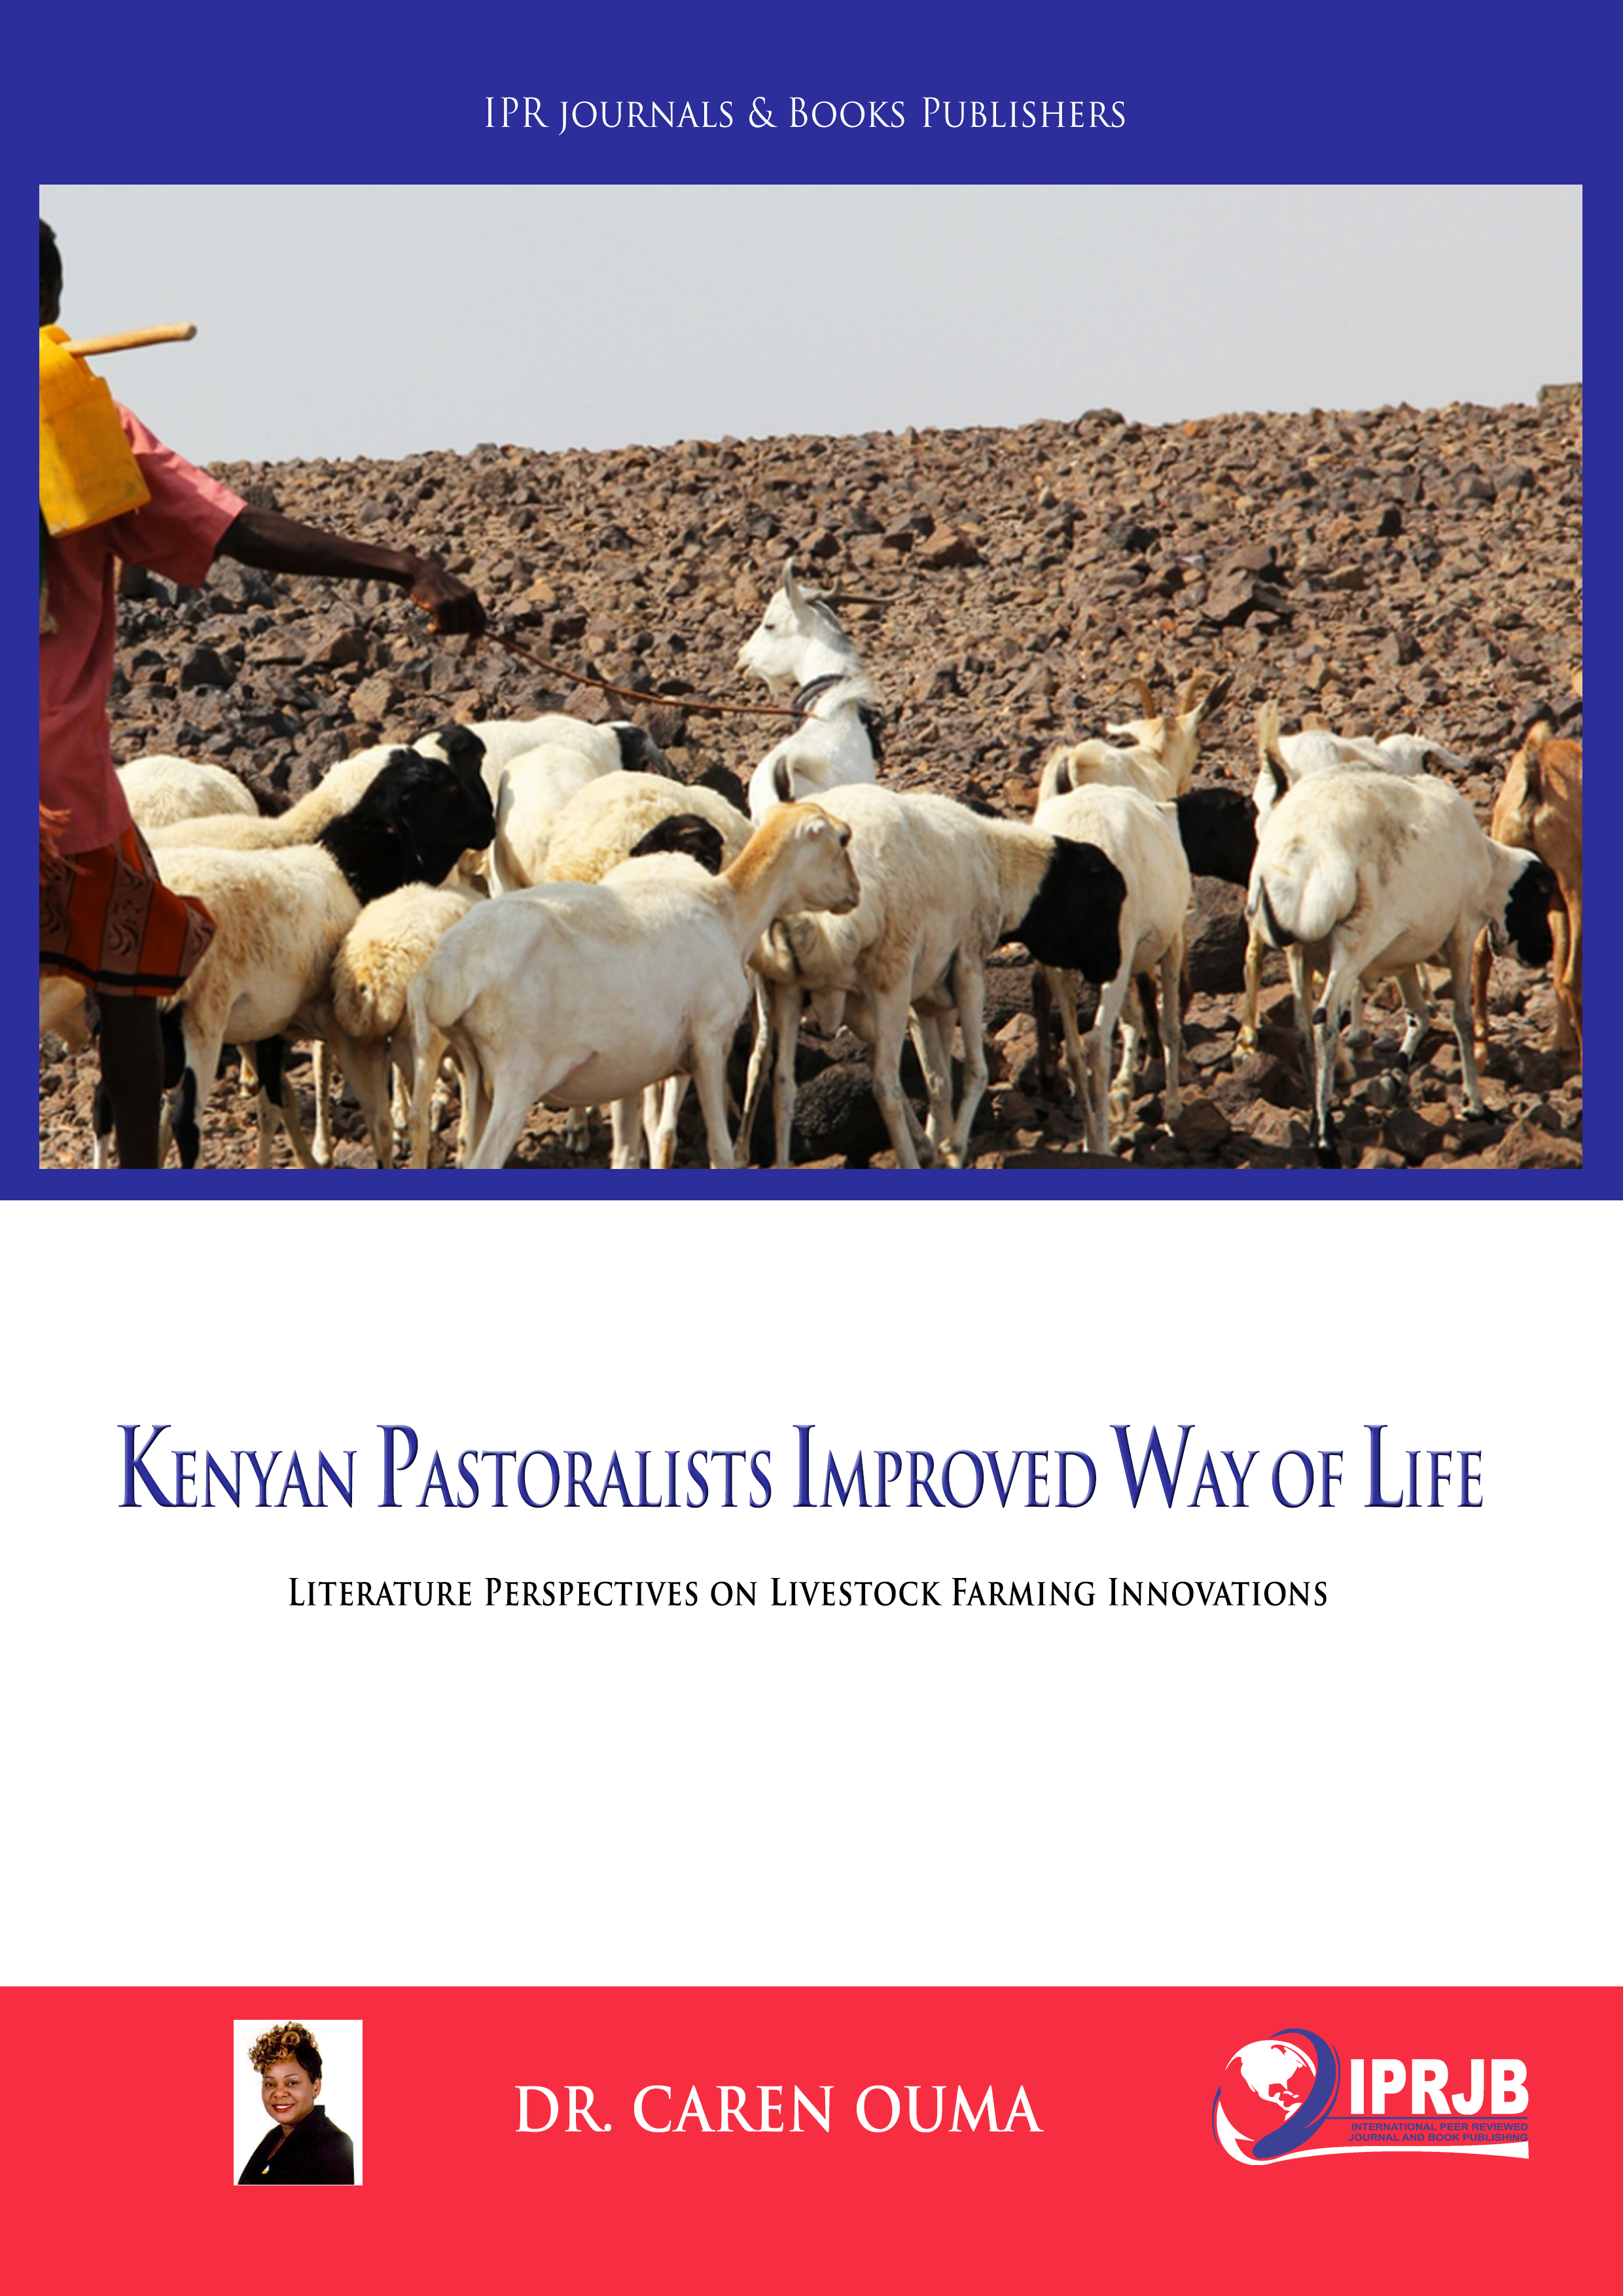 Kenyan Pastoralists improved way of life; literature perspectives on livestock farming innovations